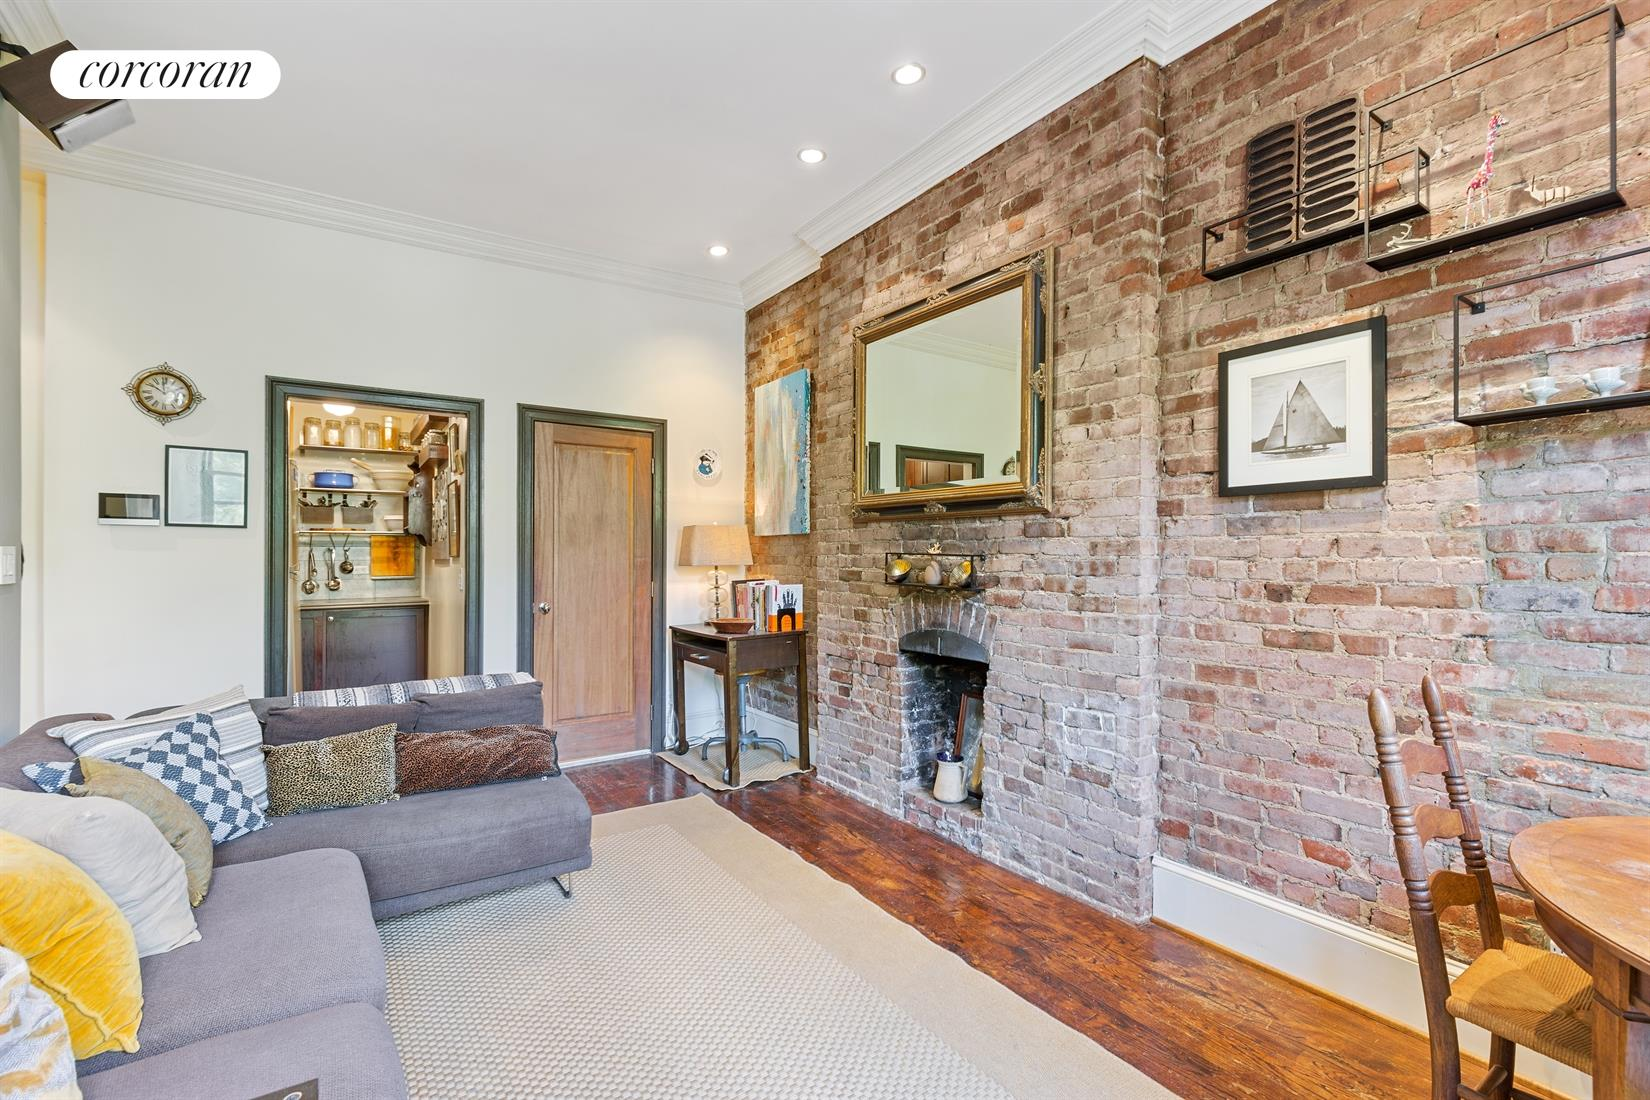 Apartment for sale at 154 West 77th Street, Apt 4F